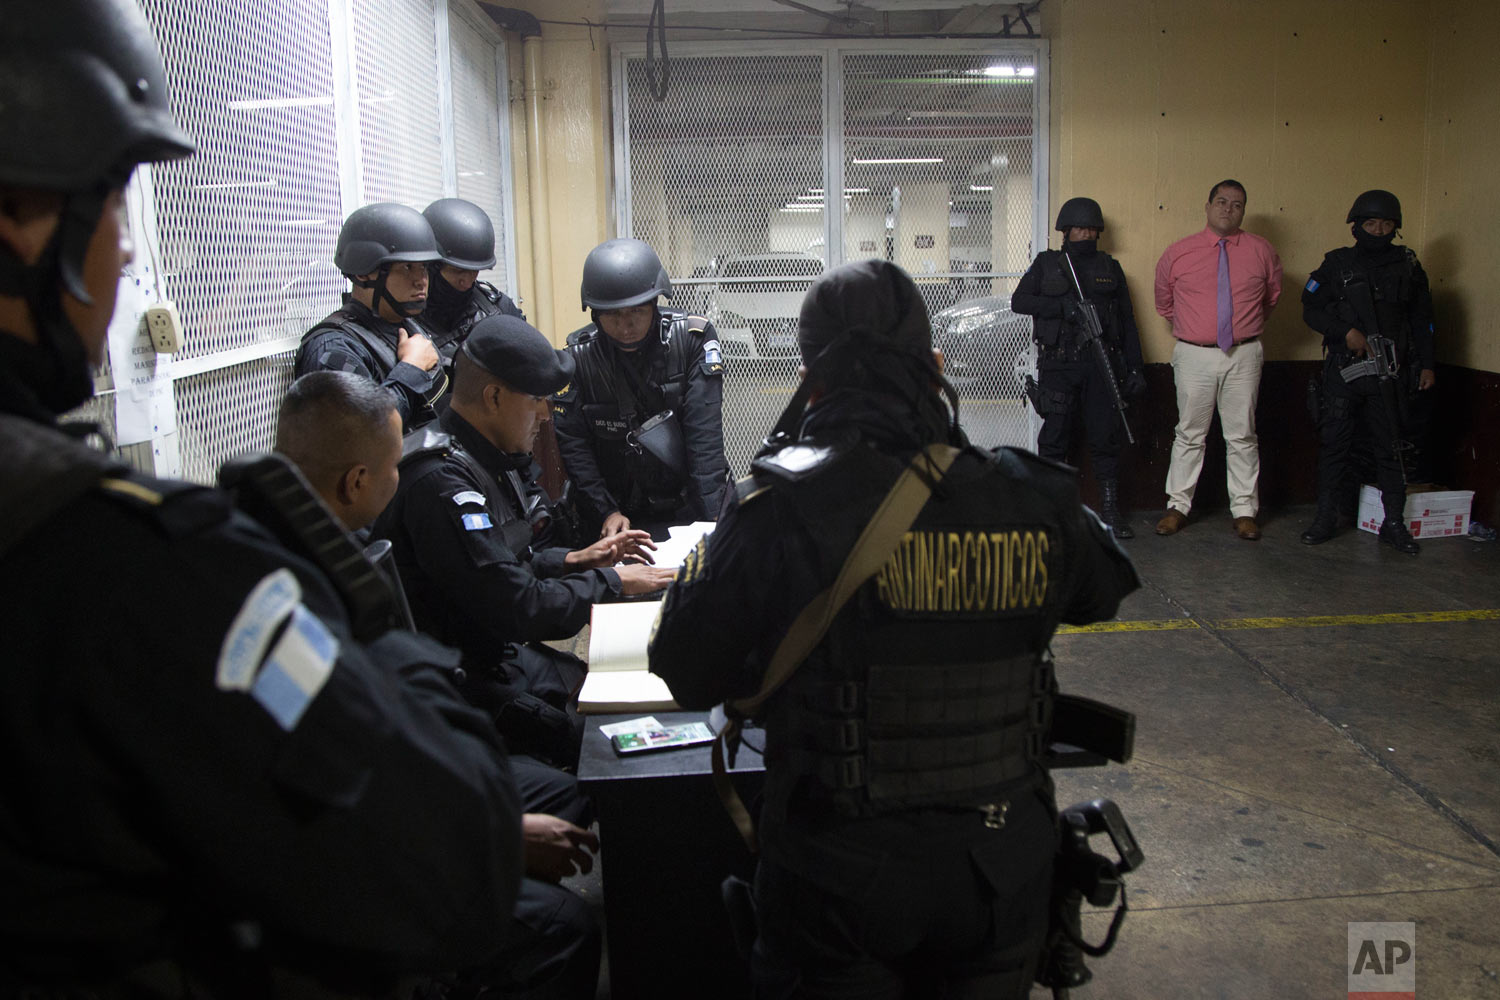 In this Jan. 13, 2018 photo, lawmaker Julio Juarez Ramirez, far right, stands handcuffed at court where he's accused of orchestrating the 2015 murder of two journalists in Guatemala City. Juarez allegedly hired hit men to kill journalist Danilo Efrain Lopez, fearing that his coverage would hurt Juarez's electoral campaign. A second journalist, Federico Benjamin Salazar, also died. (AP Photo/Moises Castillo)